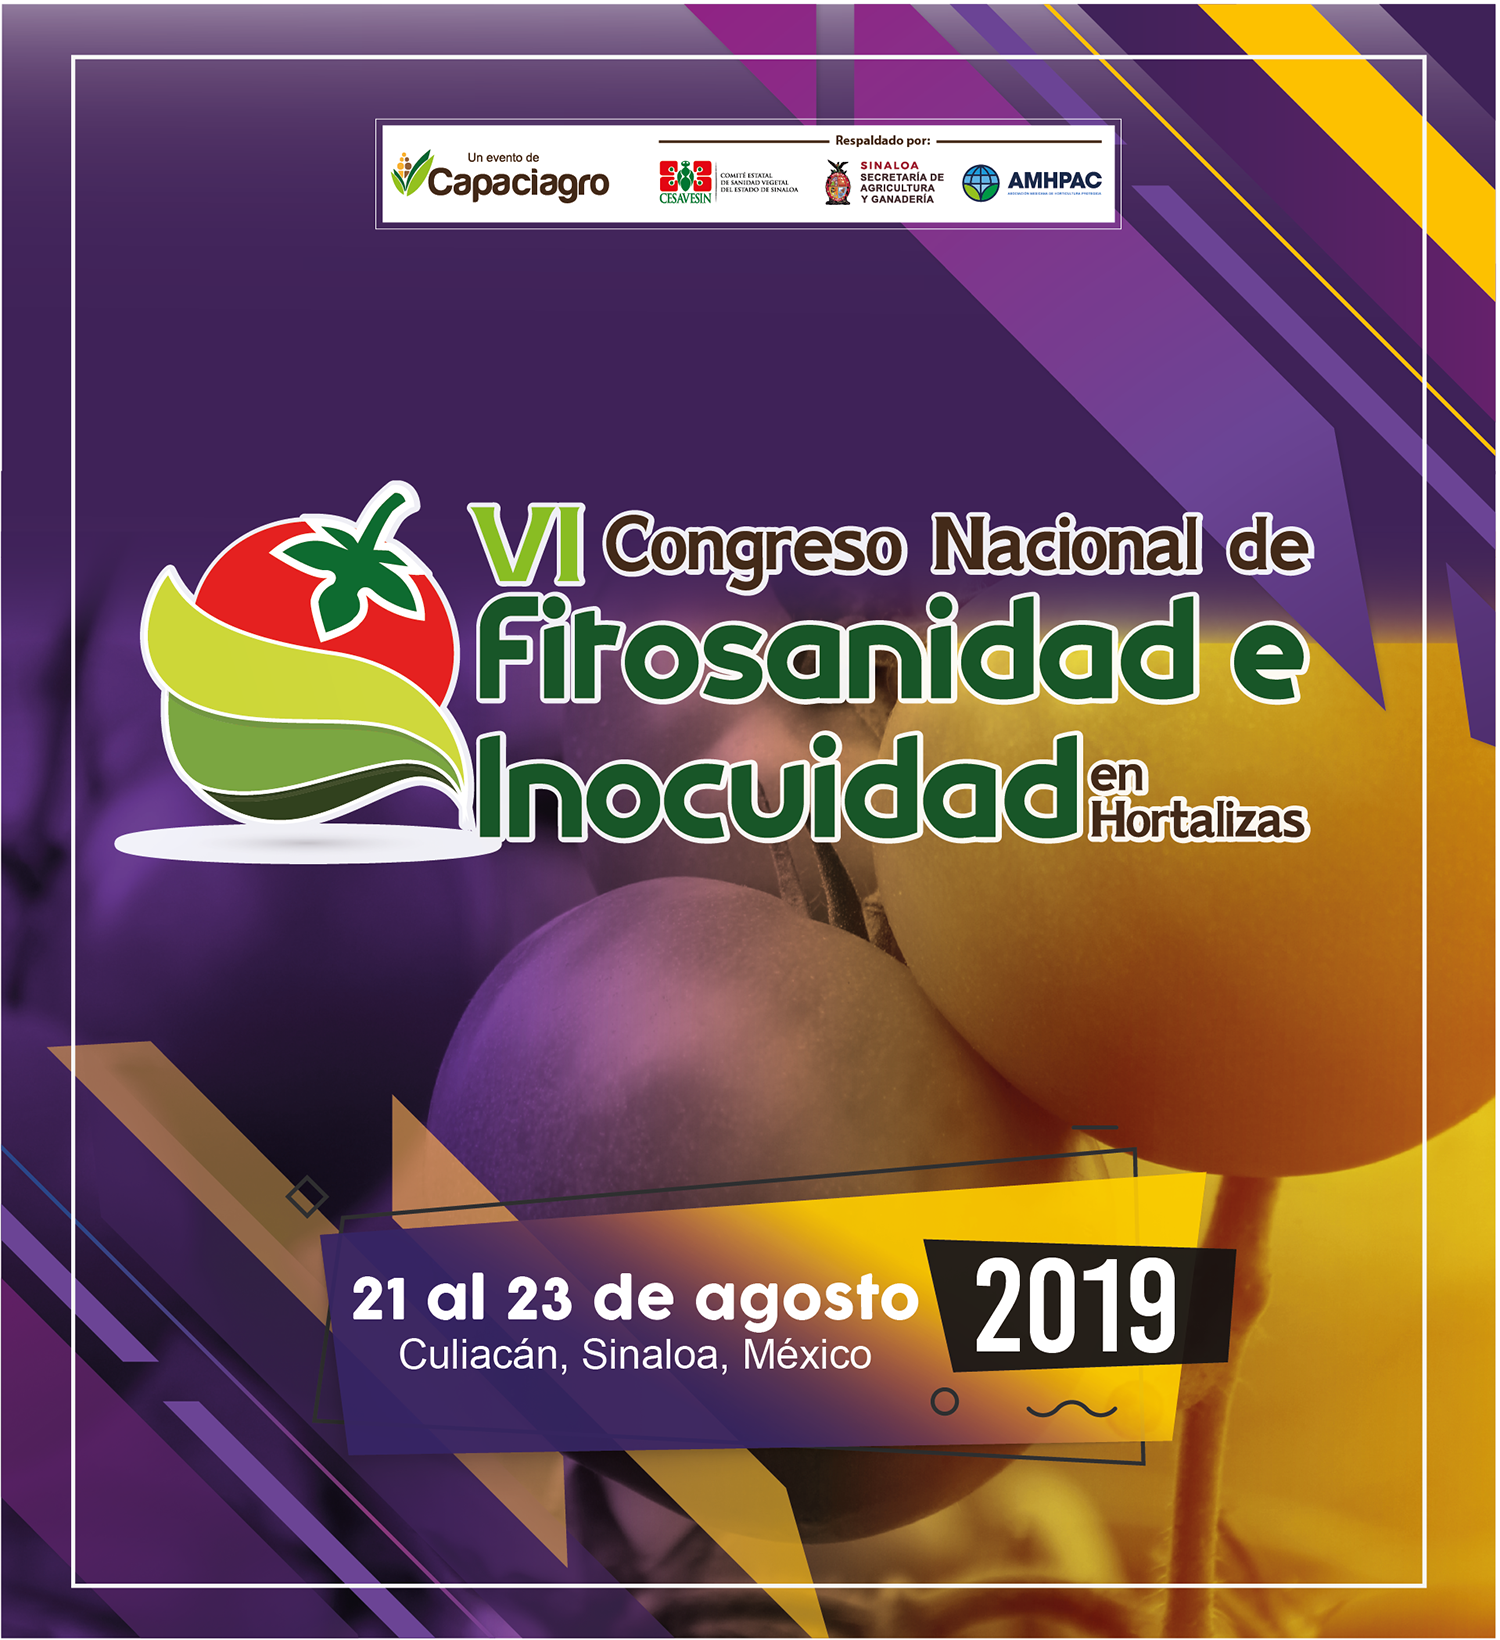 https://manejodenematodos.com/wp-content/uploads/2019/03/Slide-website-22_4.png